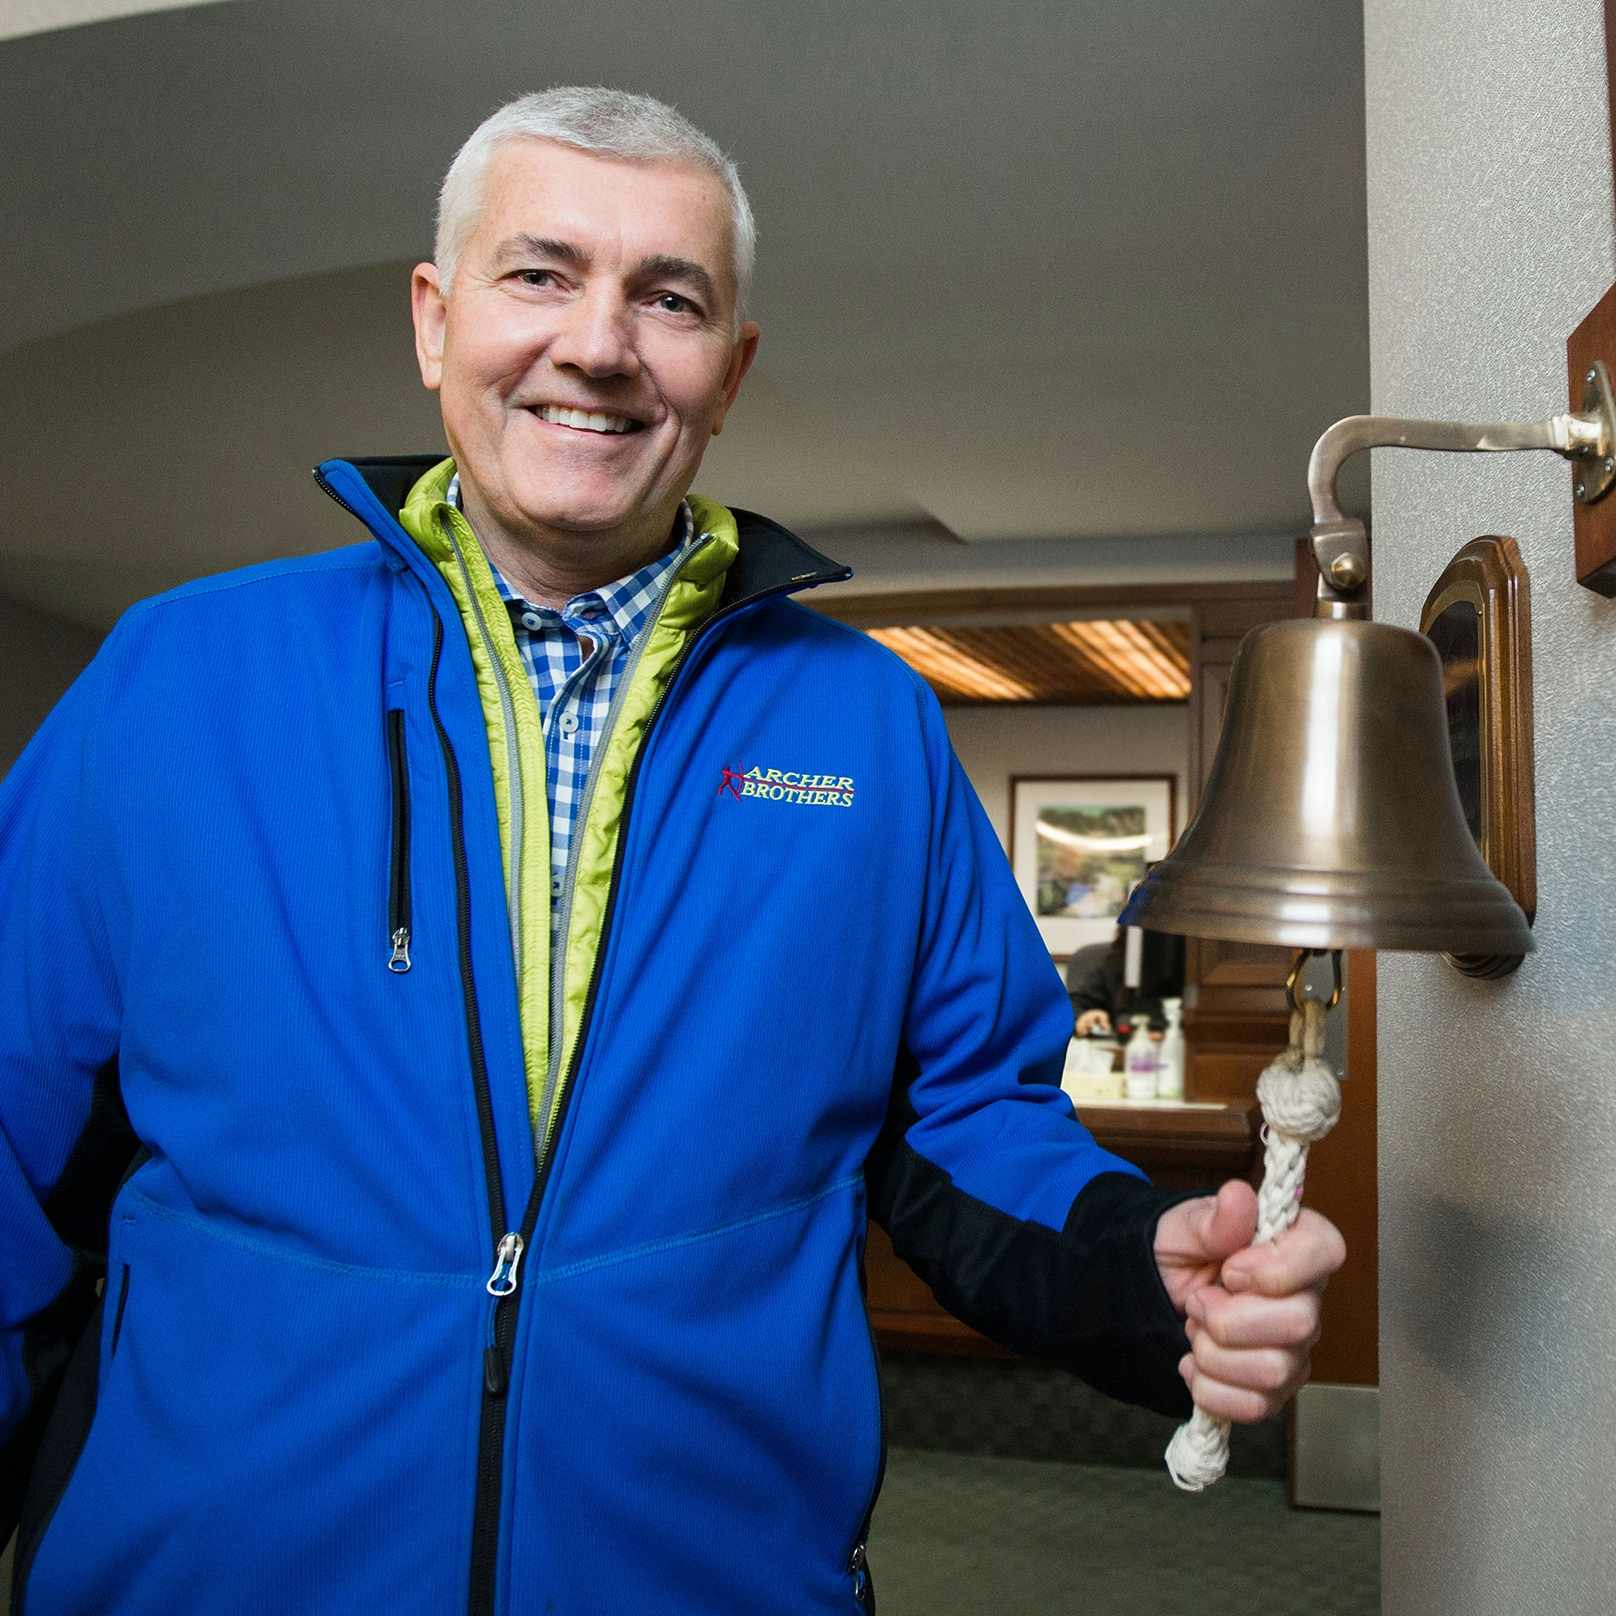 Tommy Archer ringing the bell to mark the end of radiation treatments.